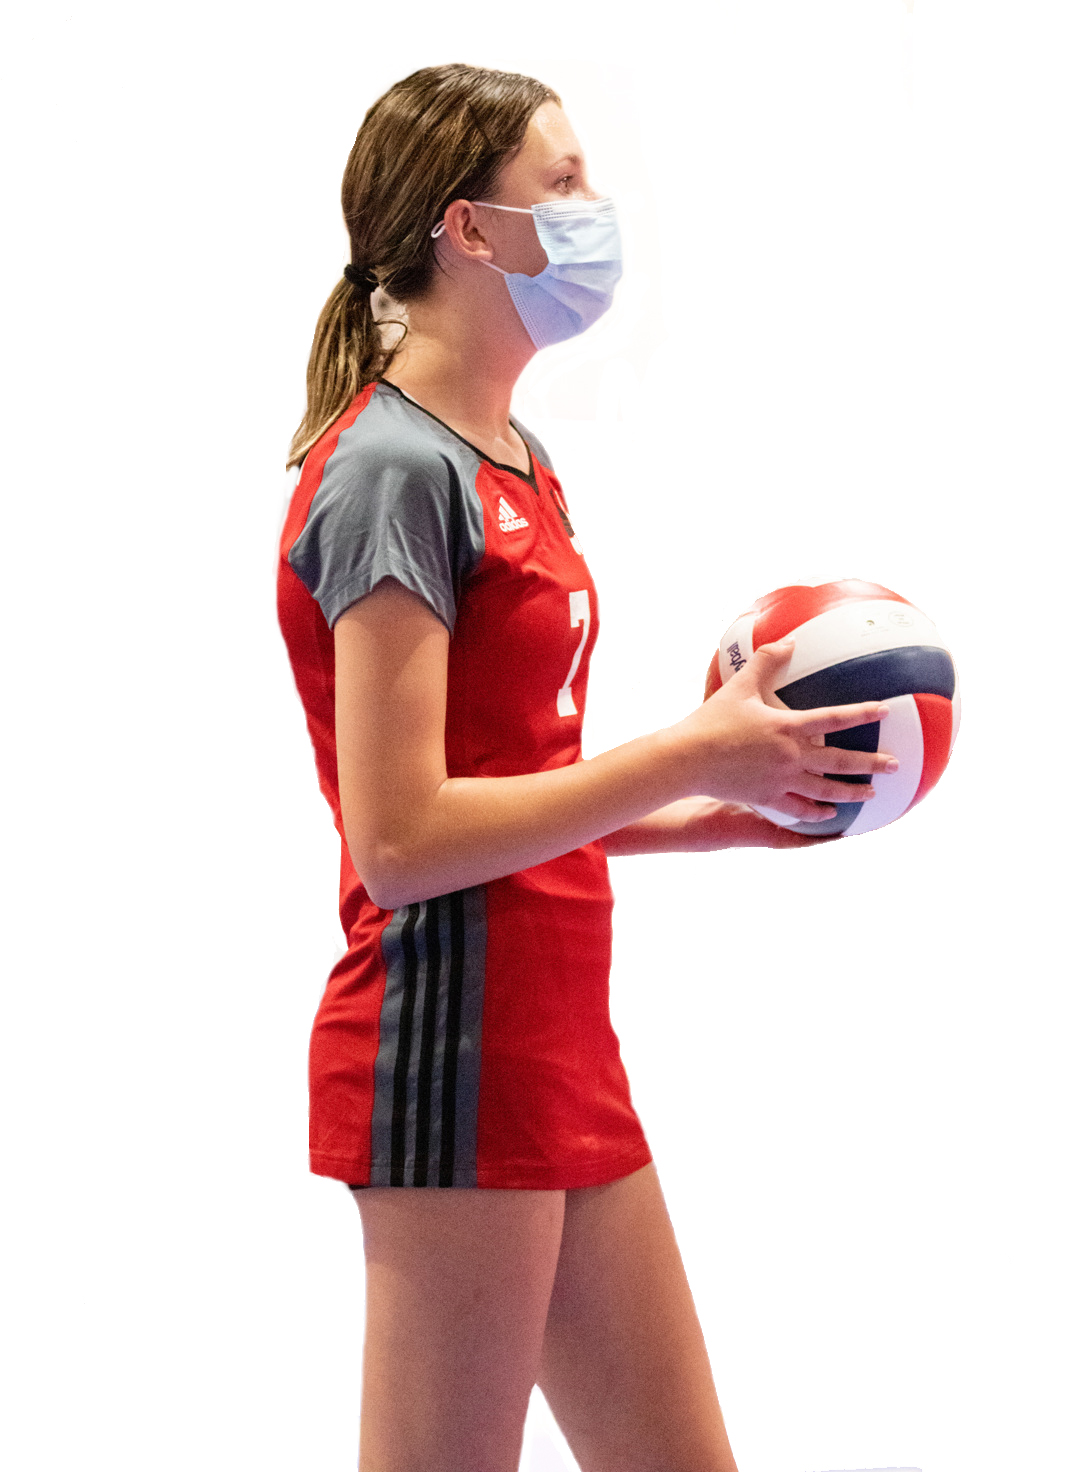 Covid Mask Player